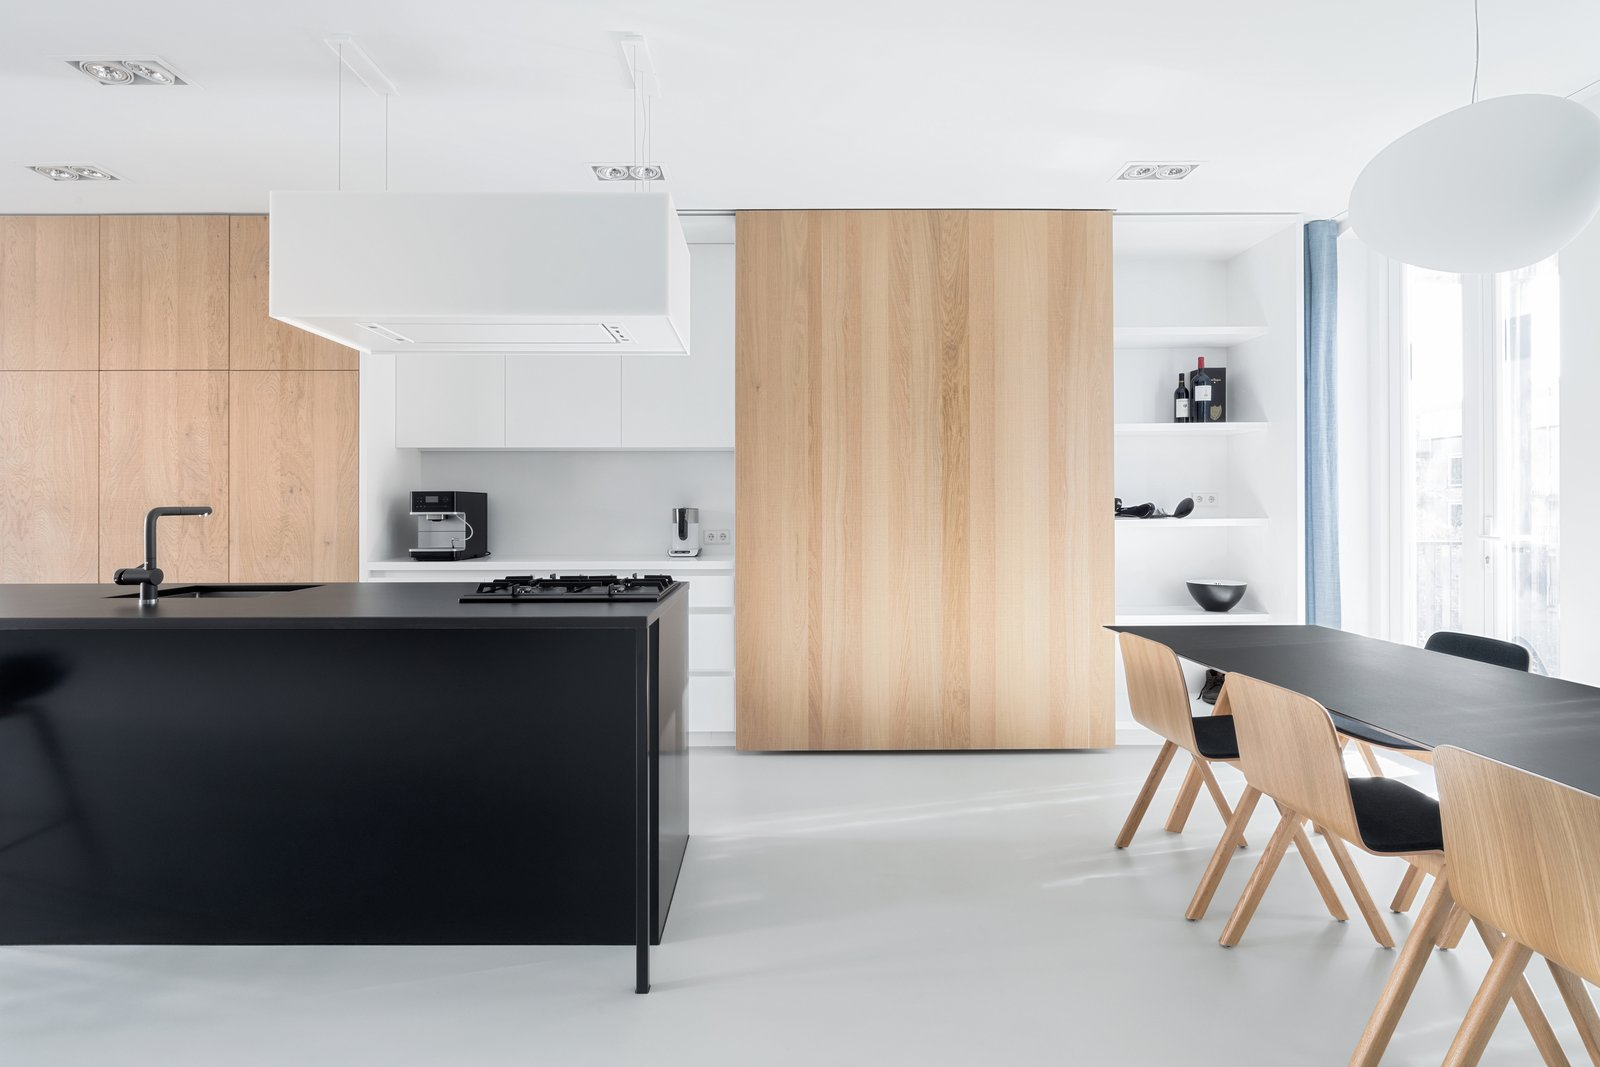 Kitchen, White Cabinet, Wood Cabinet, Ceiling Lighting, Pendant Lighting, Recessed Lighting, and Undermount Sink  Photo 1 of 10 in A Cramped Amsterdam Apartment Is Transformed Into an Airy Loft